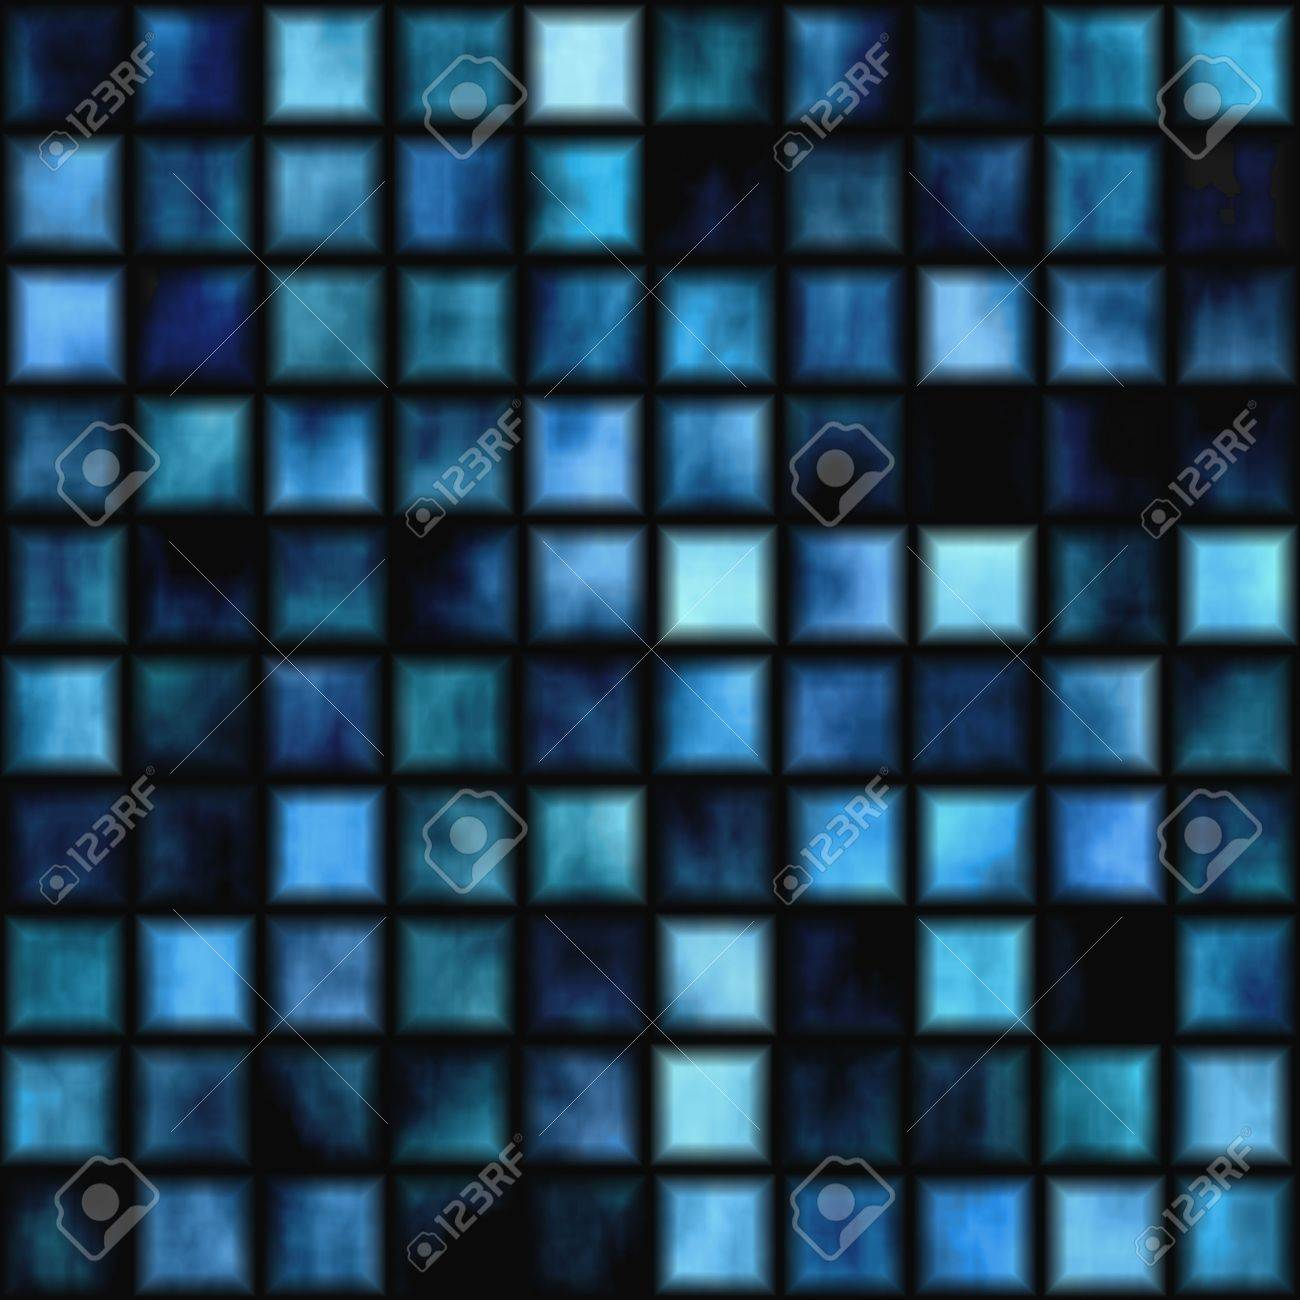 Bathroom Tiles Clear Ceramic Abstract Background Pattern Stock Photo ...